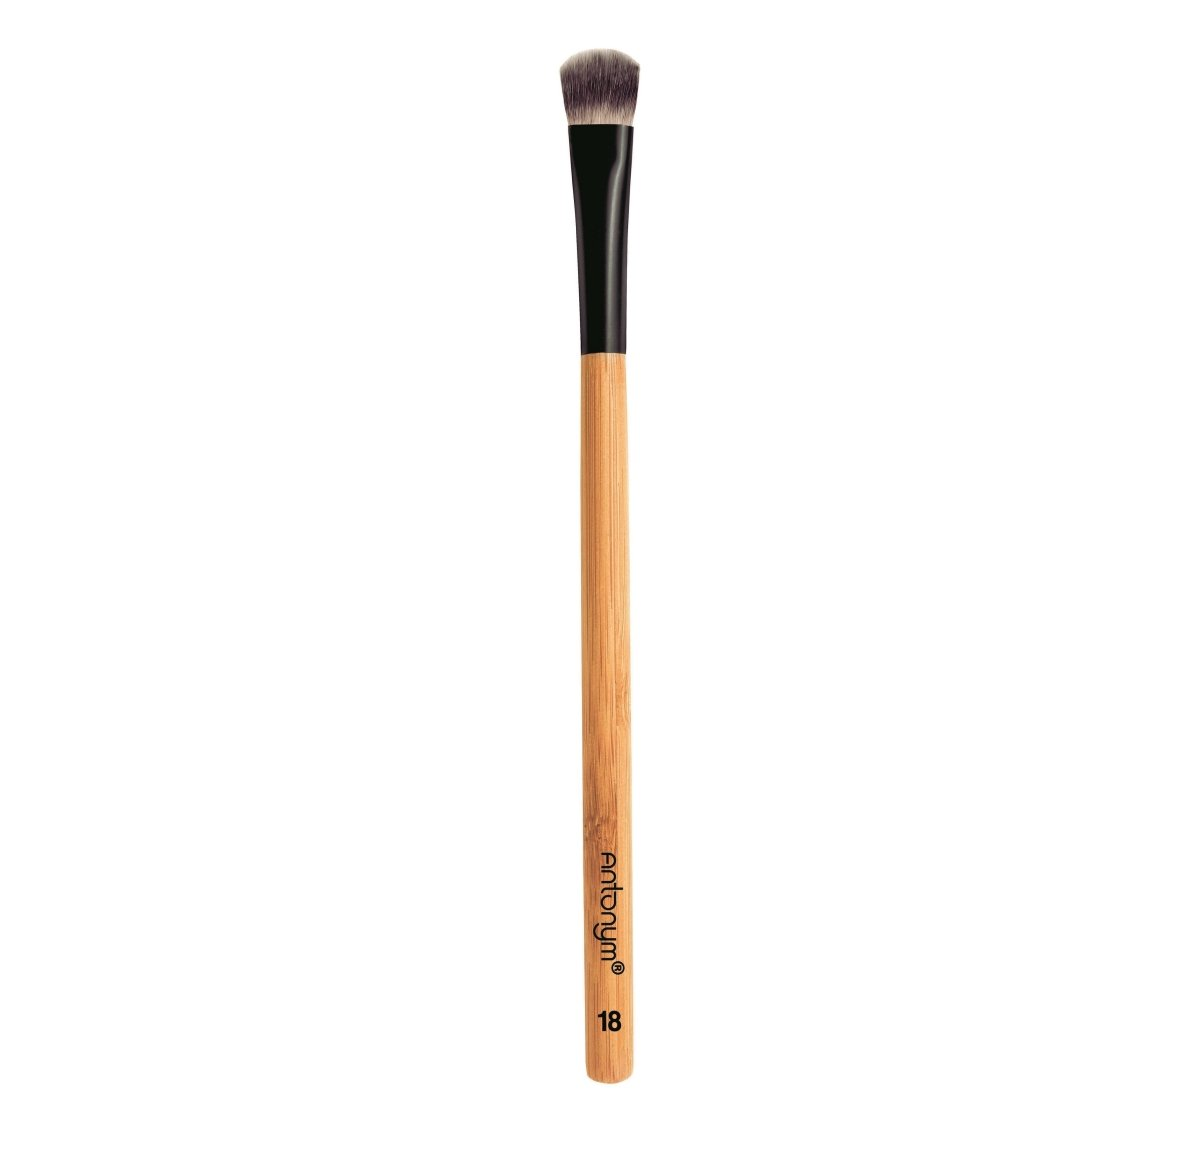 ANTONYM Medium Long Eye Shader Brush 眼影掃(中長毛) #18 - MINT Organics